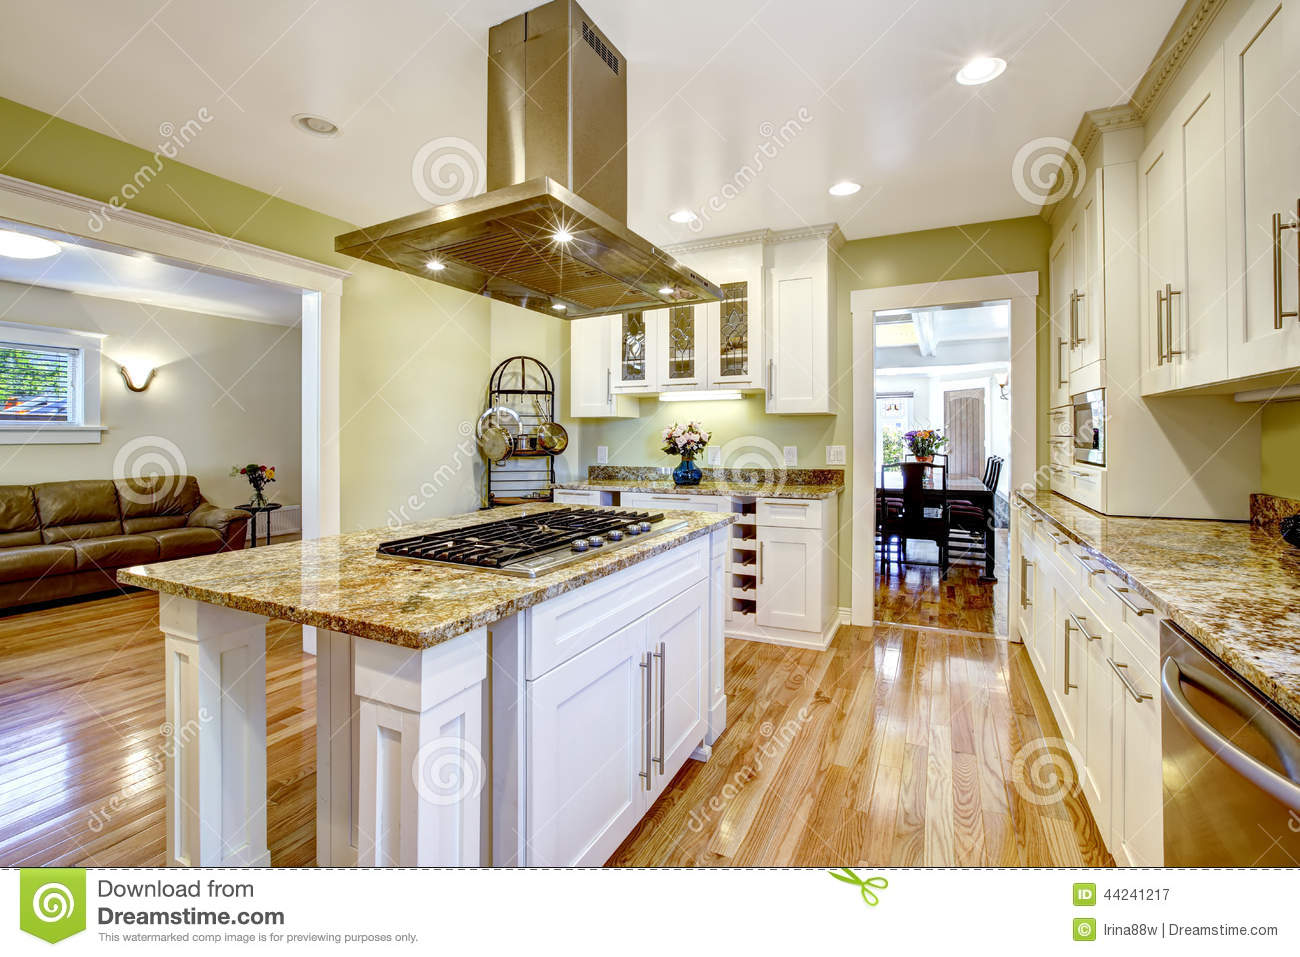 Kitchen Island With Built In Stove Granite Top And Hood Stock Image Image Of Home Wall 44241217